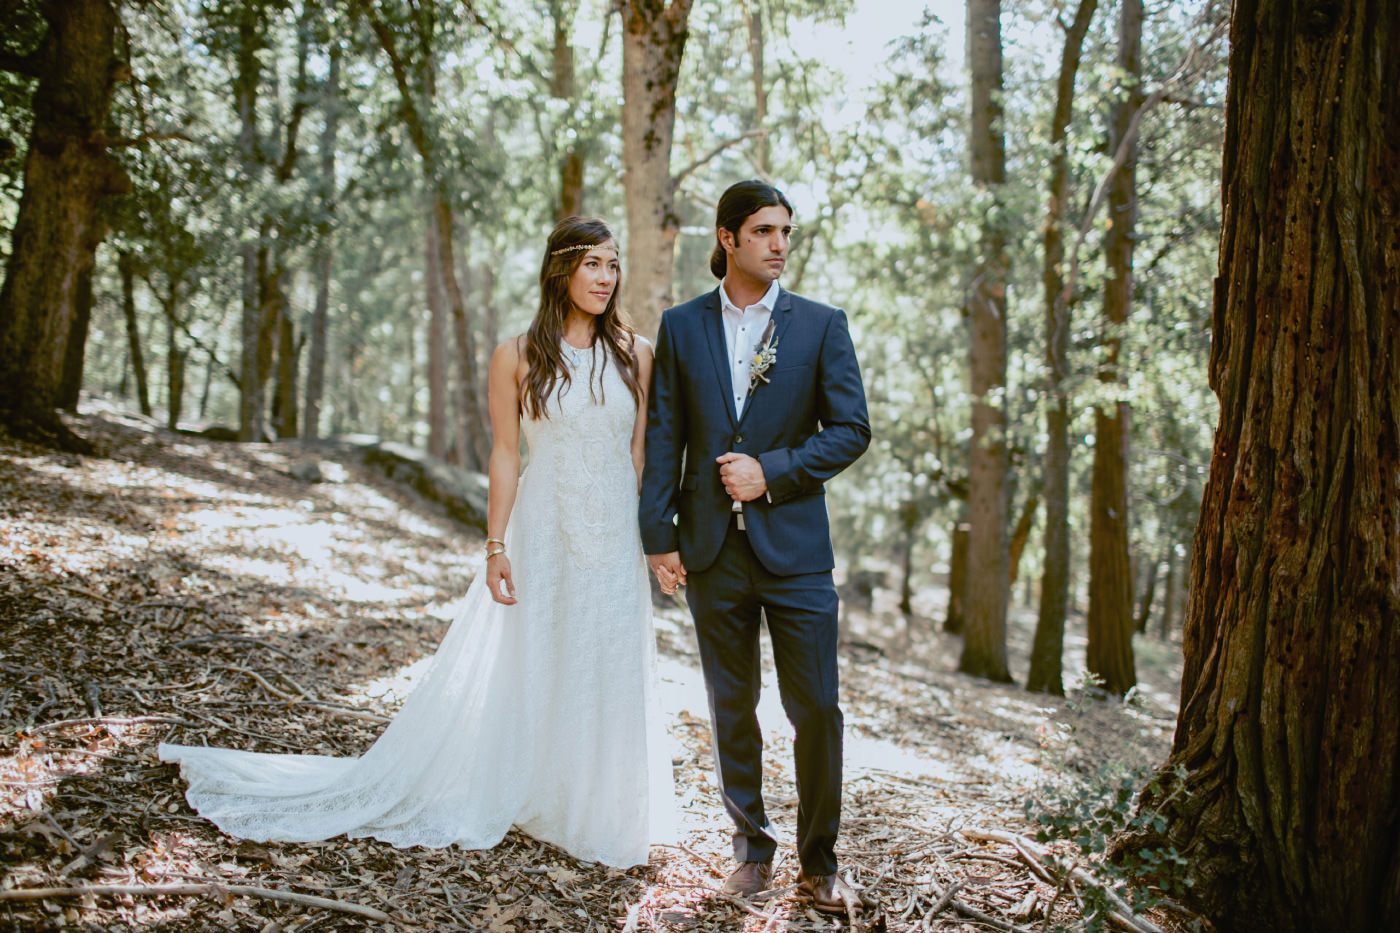 Palomar Mountain Wedding : Meg & Barak